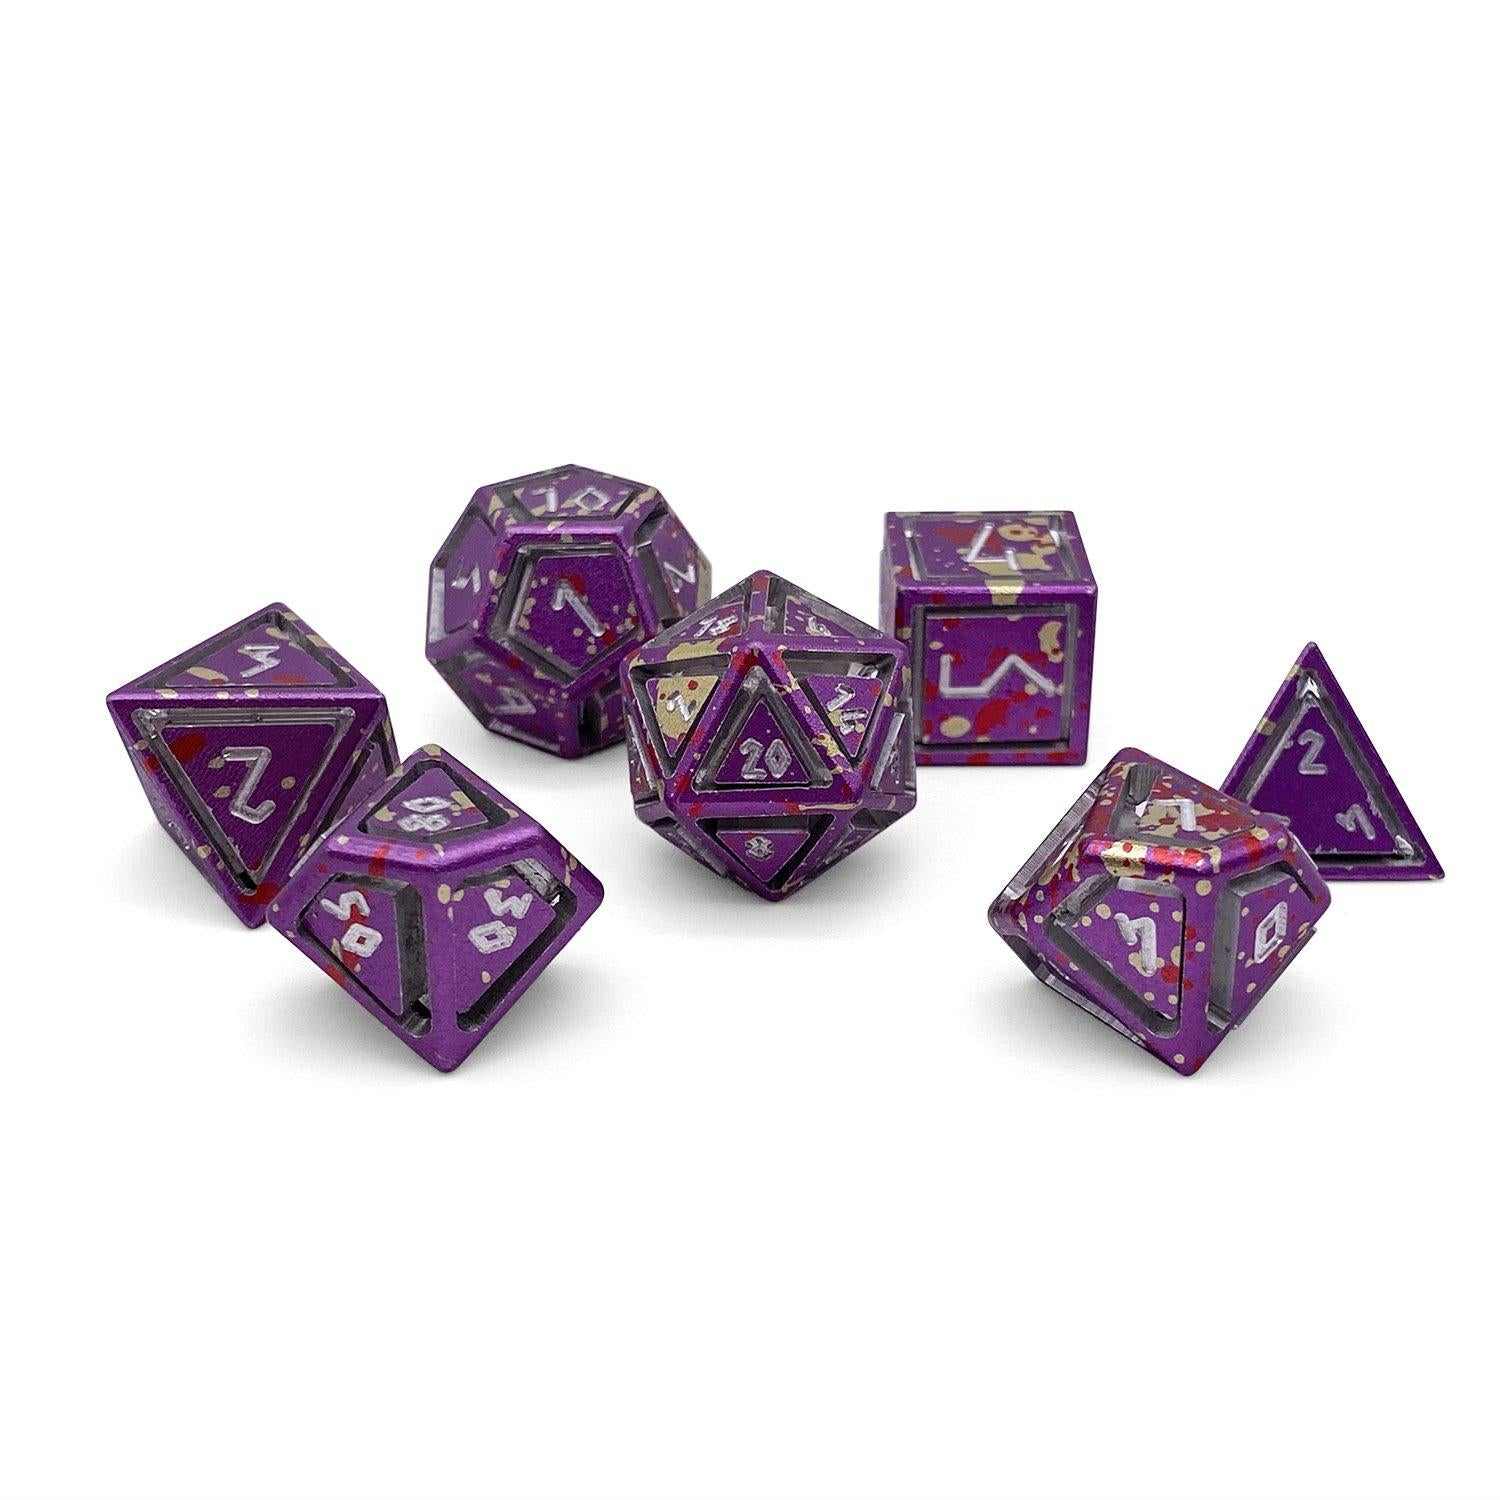 Nimbus Wondrous Precision CNC Aluminum Dice Set - Purple Wyrm